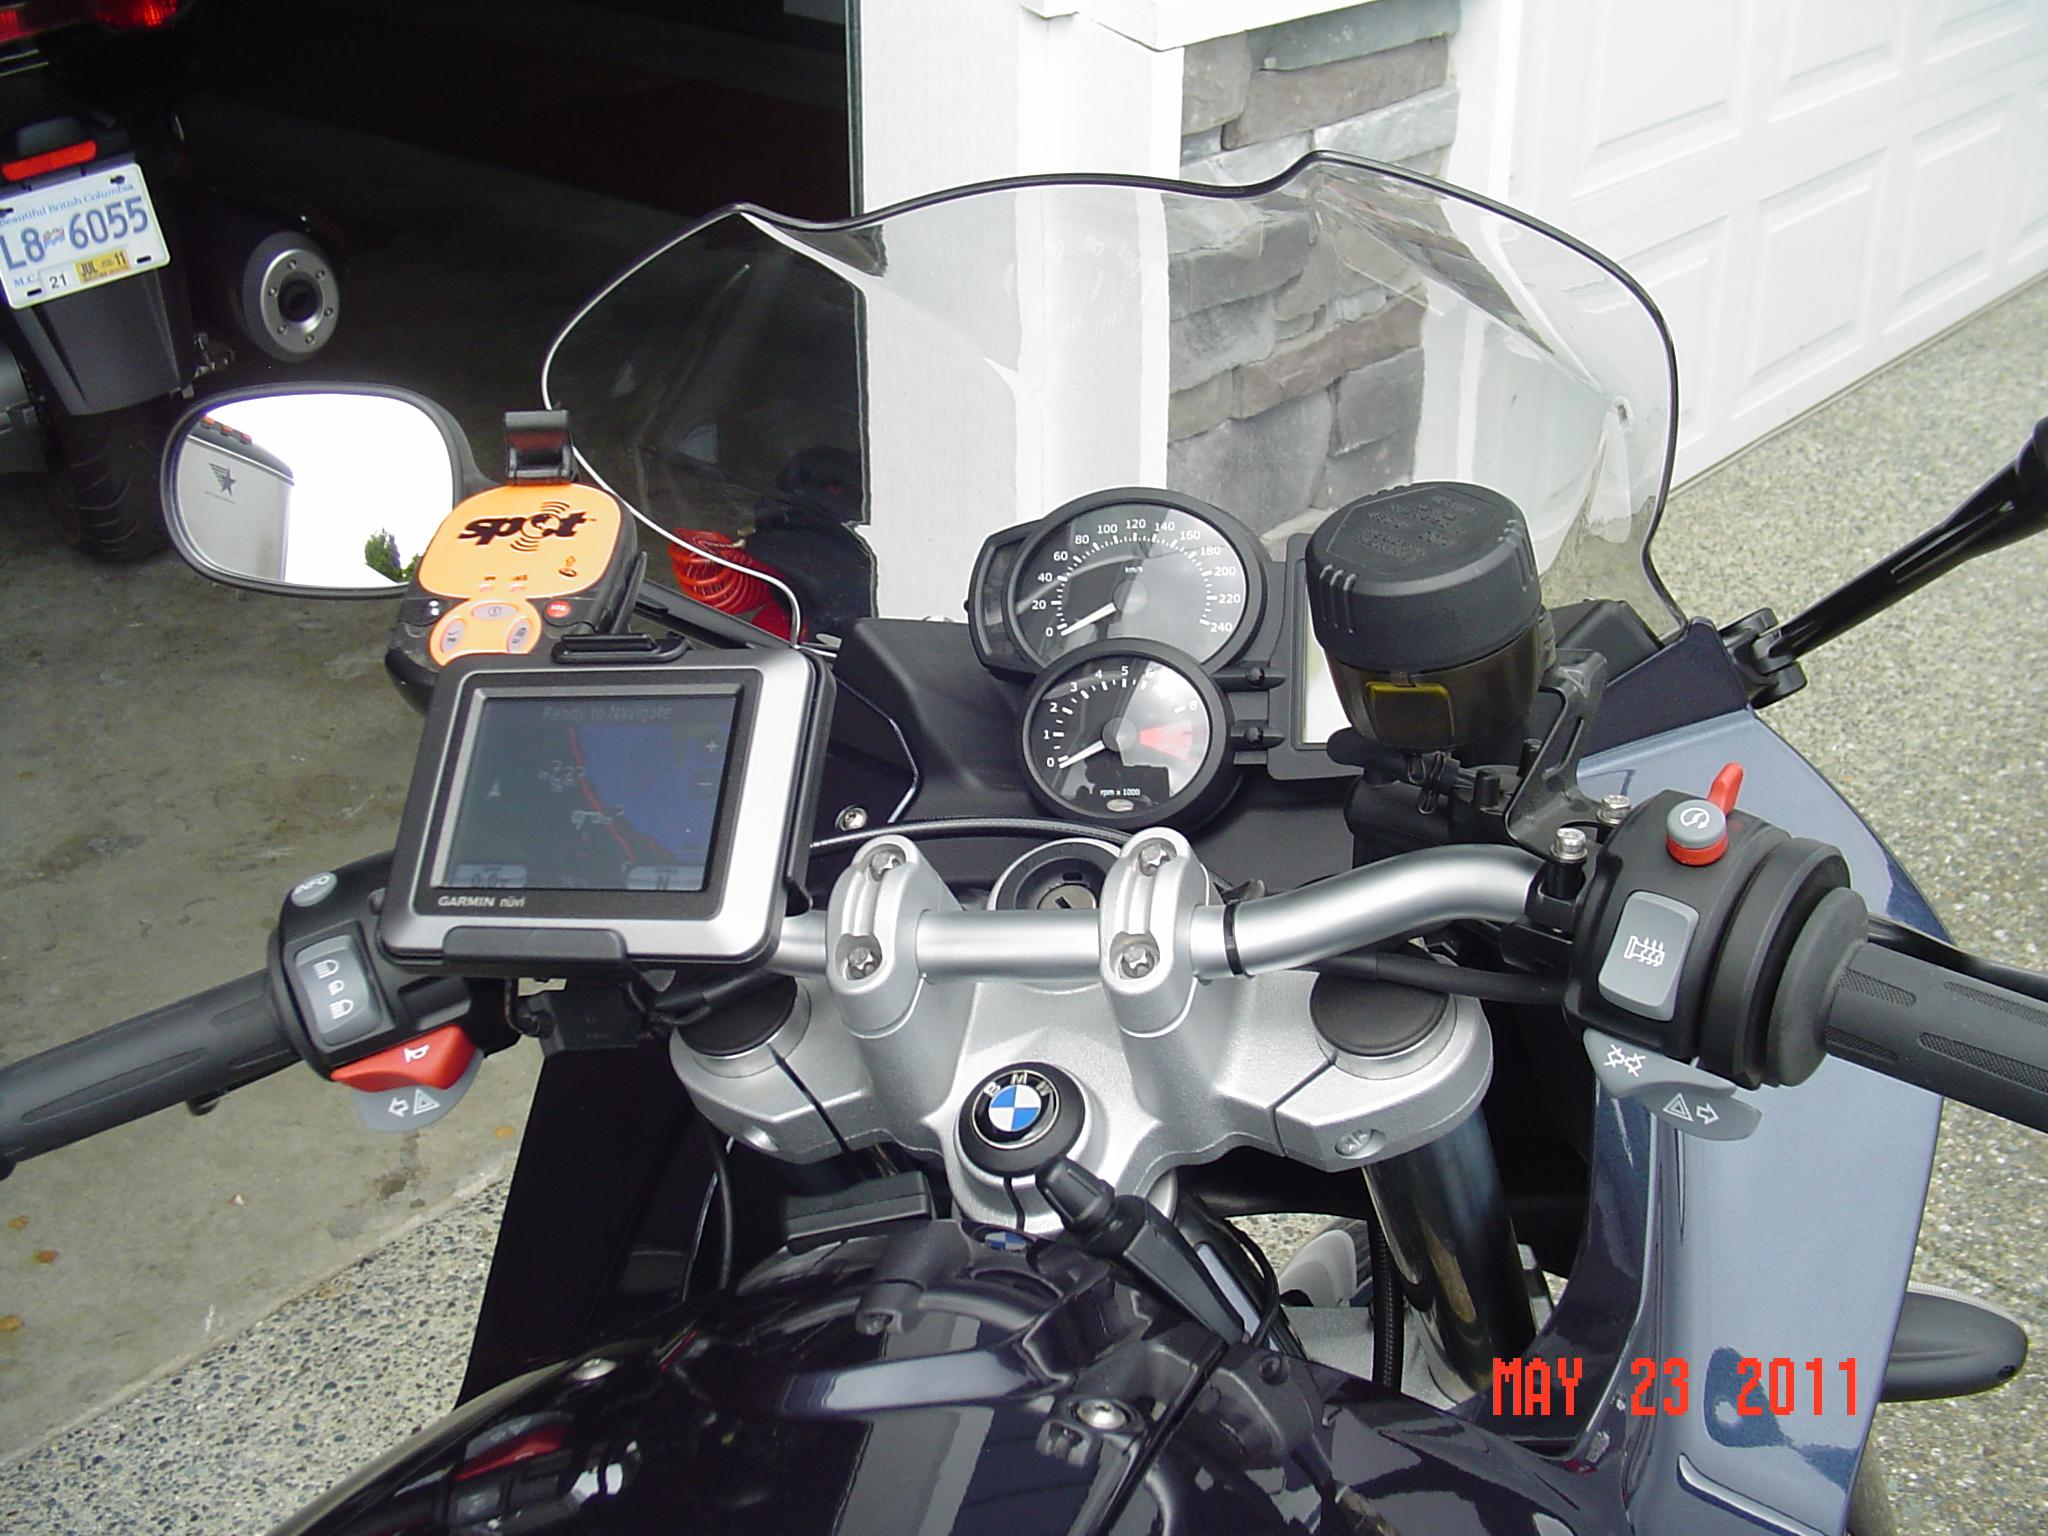 Glen S New F800st Bmw Gallery Article